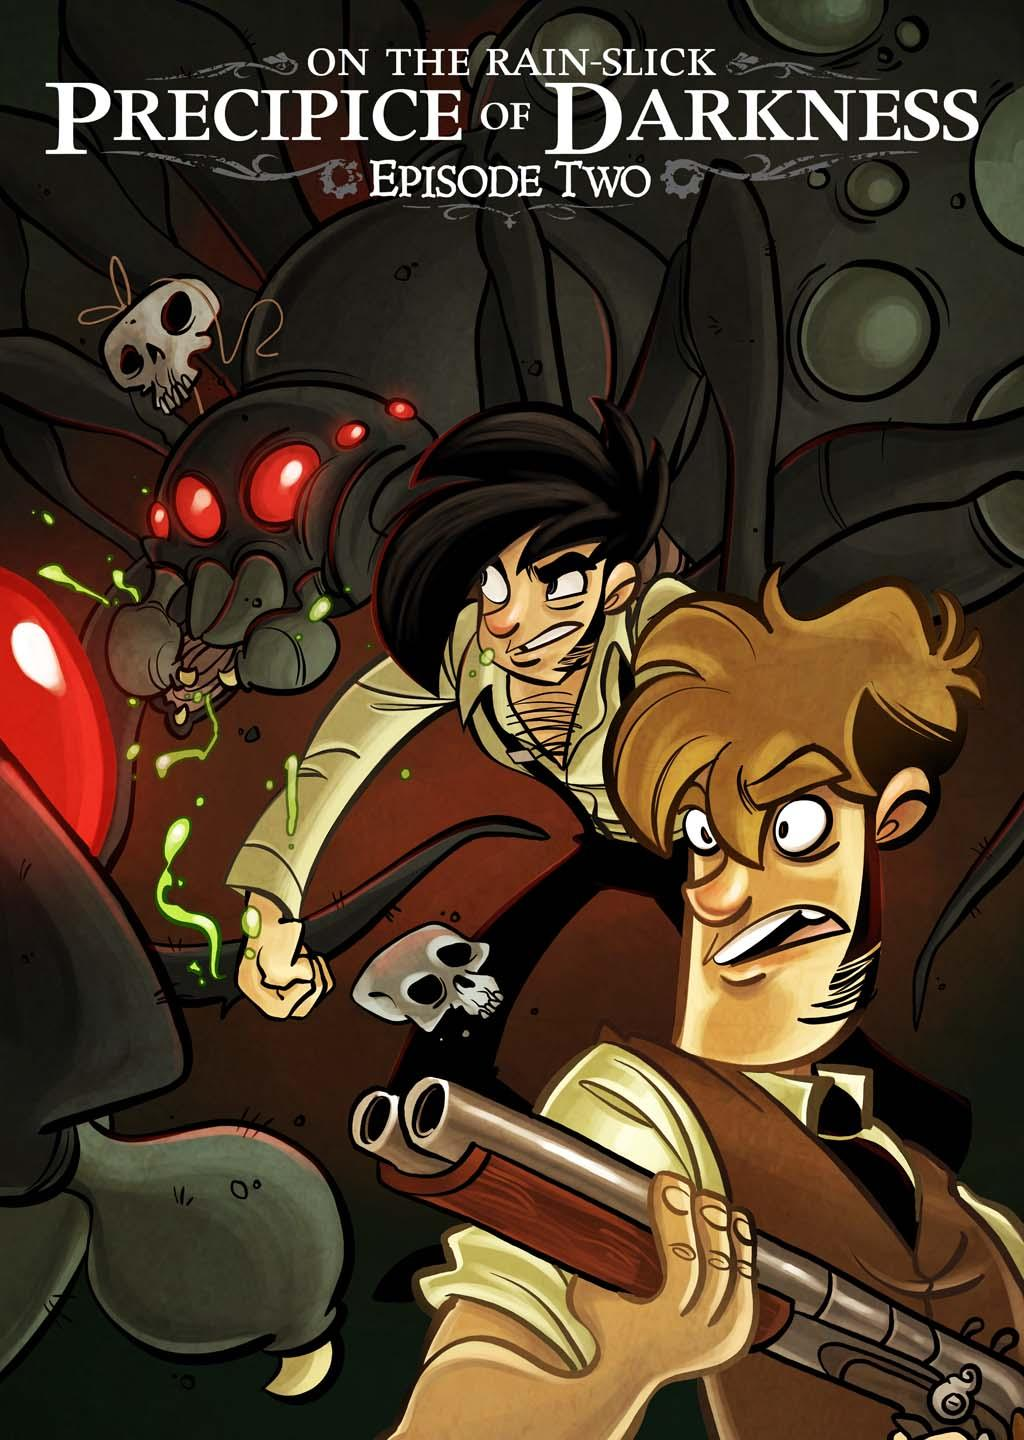 Penny Arcade Episode 2 next week for 1200 points